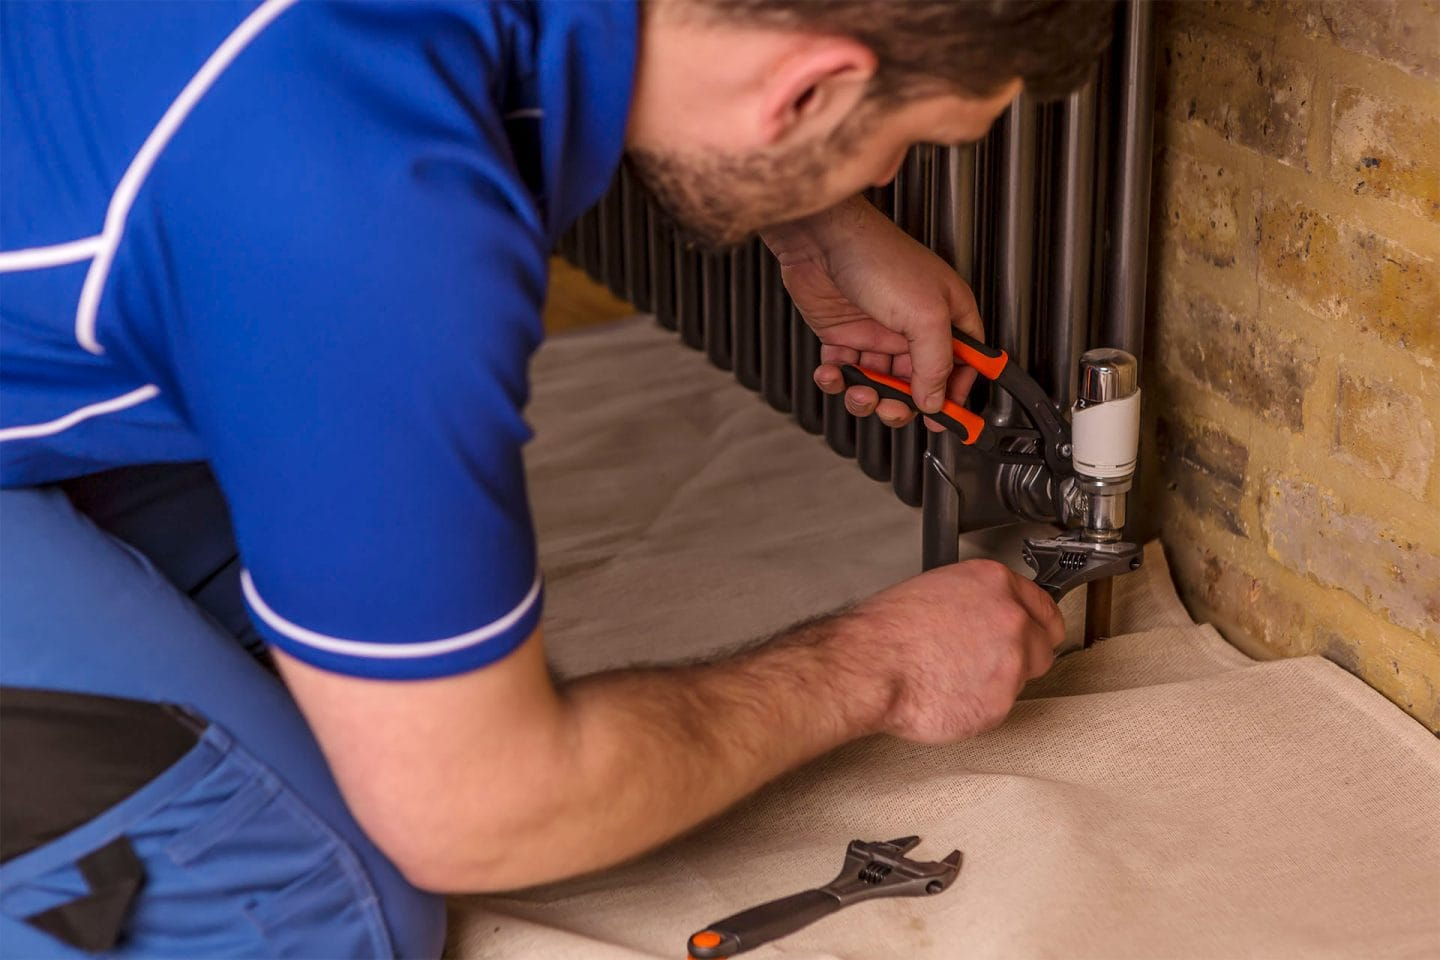 Aspect: Central heating system repairs